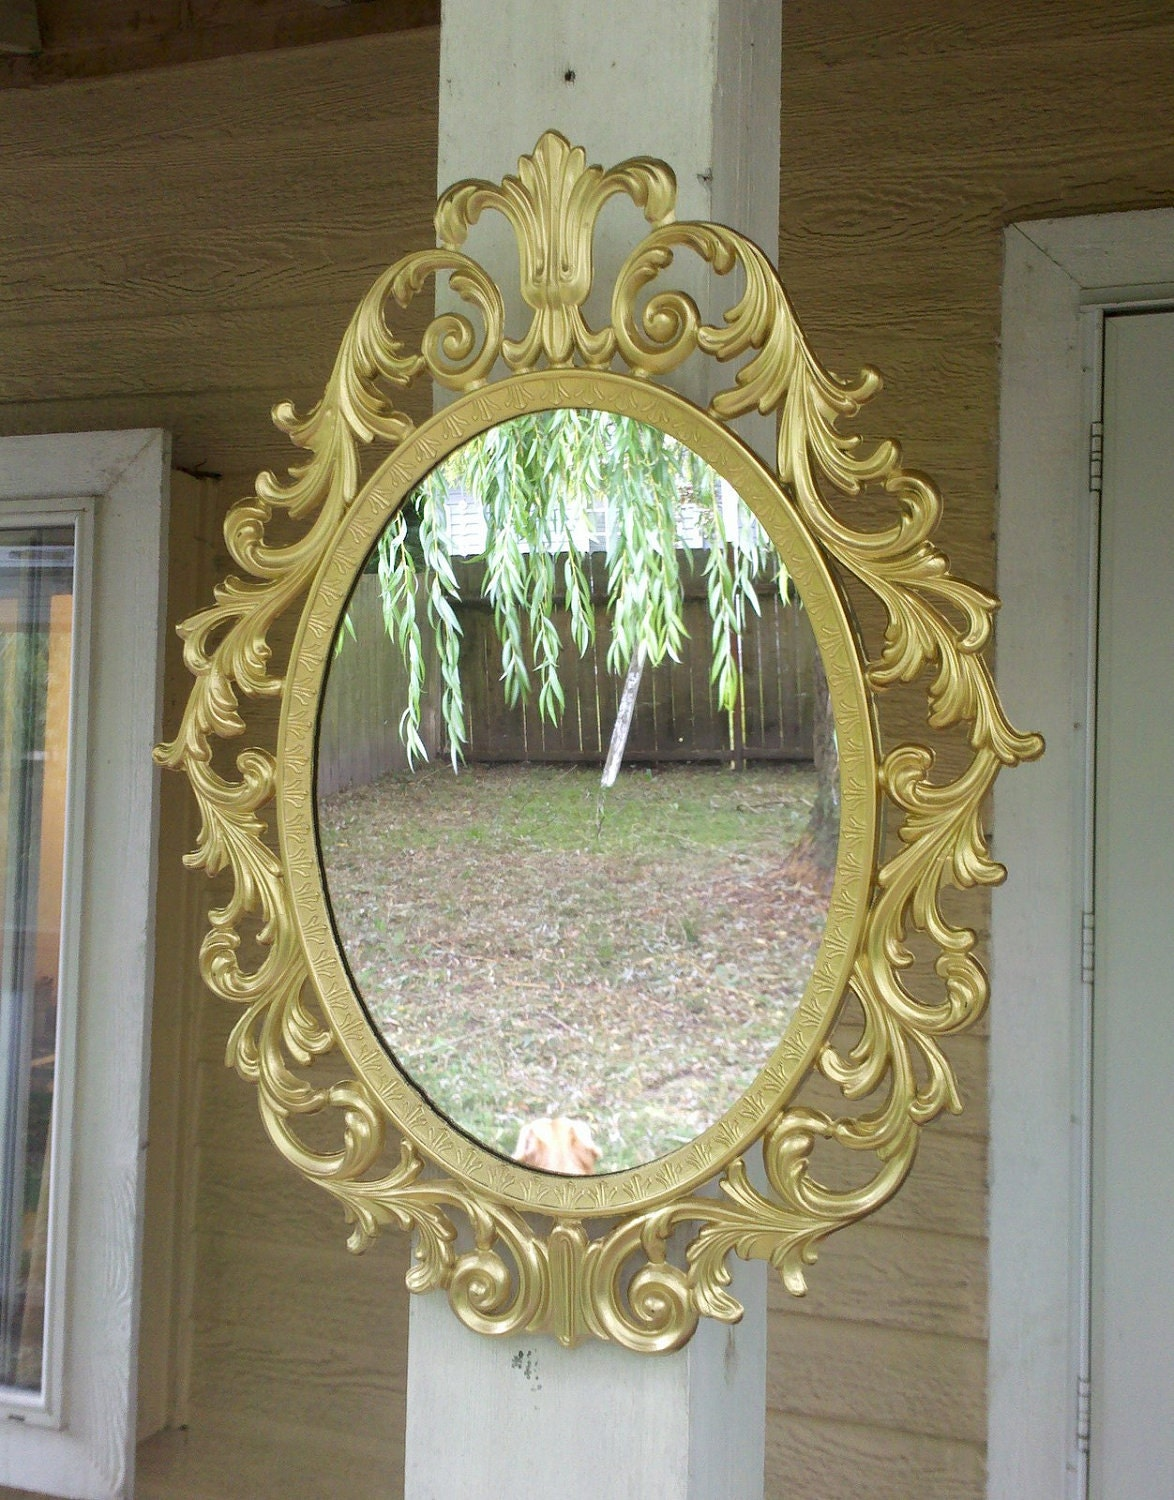 Fairy Princess Mirror Ornate Vintage Frame In Shiny Gold